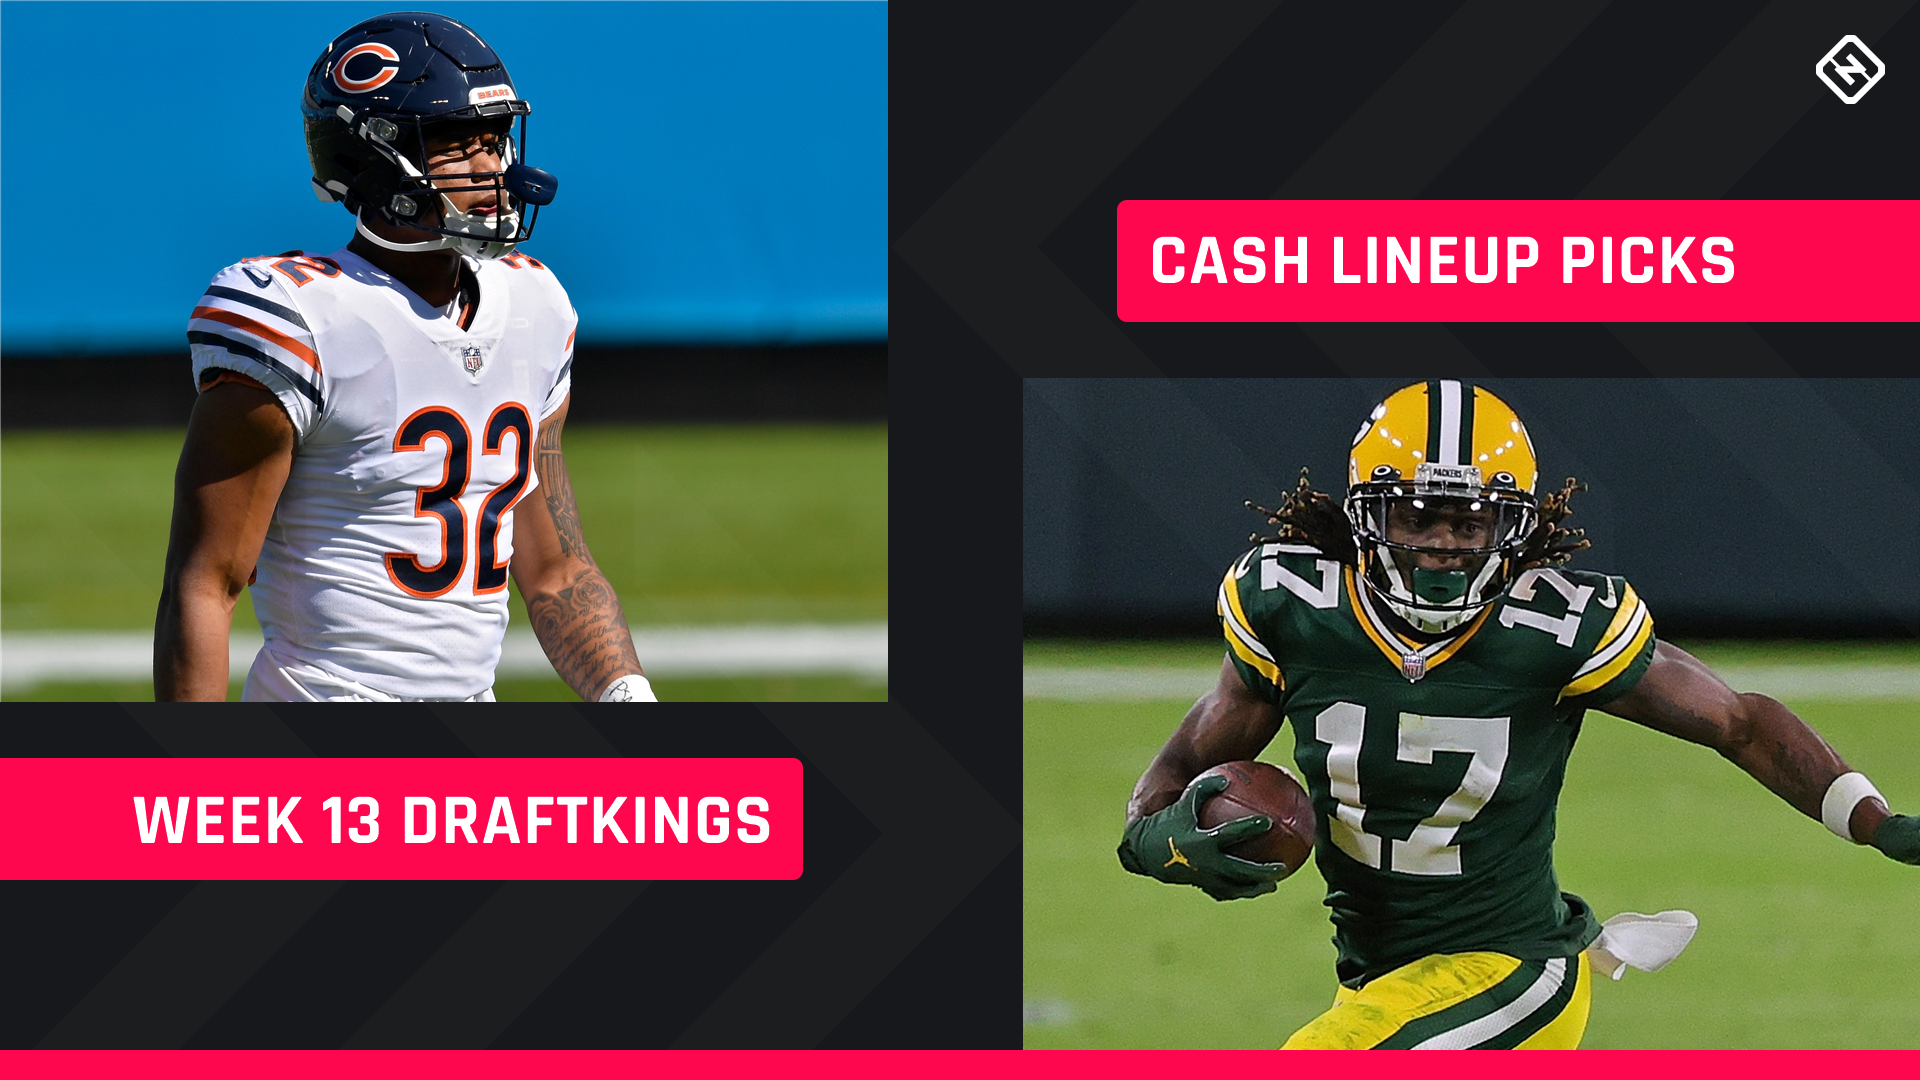 Week 13 DraftKings Picks: NFL DFS lineup advice for daily fantasy football cash games - sporting news